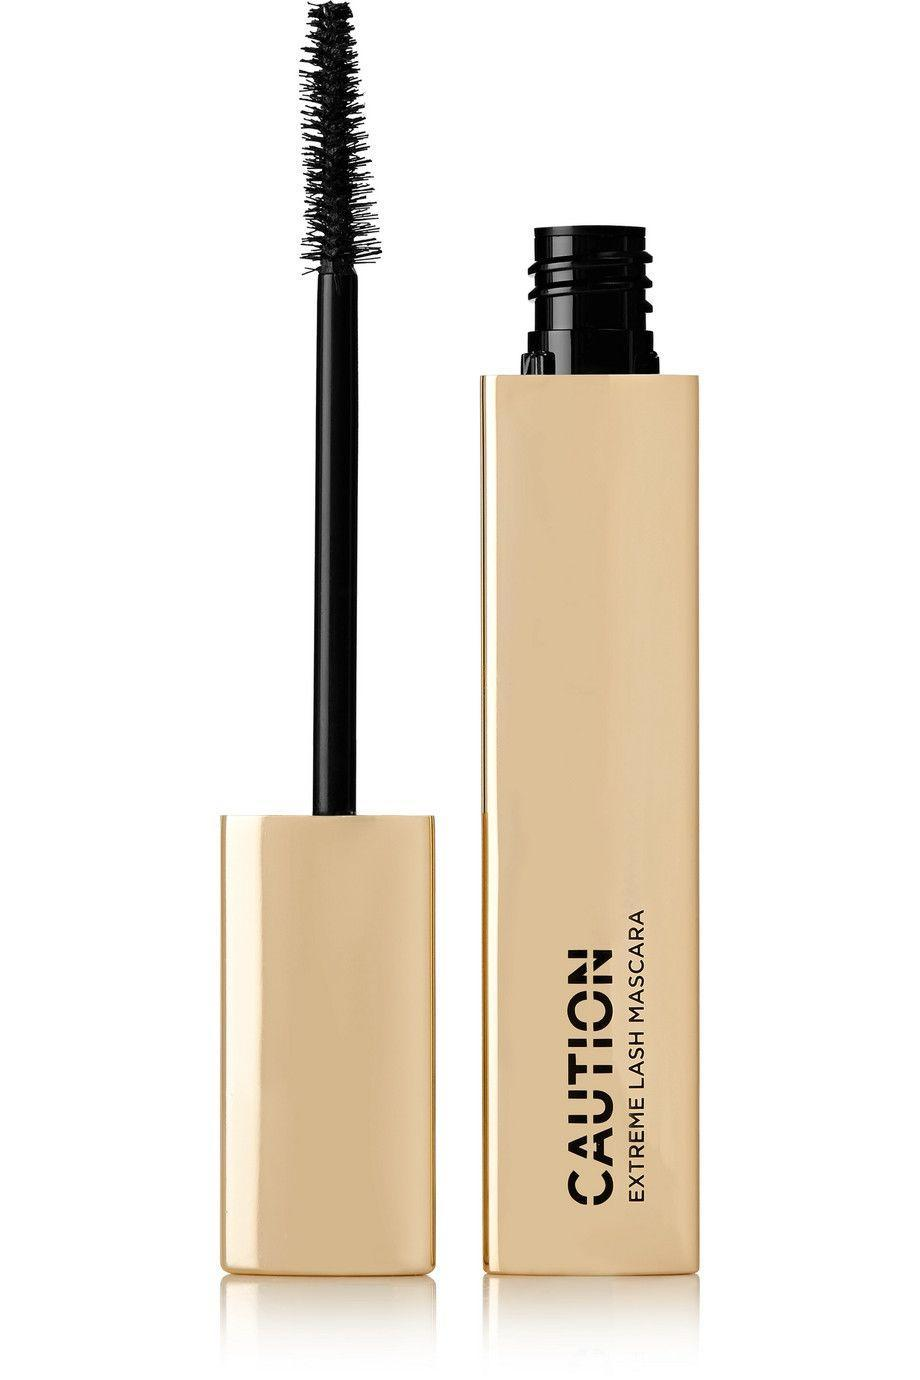 "<p>If you want insane volume, lift and separation this mascara does it all. Forget false lashes, this is all you need. </p><p><a class=""link rapid-noclick-resp"" href=""https://go.redirectingat.com?id=127X1599956&url=https%3A%2F%2Fwww.net-a-porter.com%2Fgb%2Fen%2Fproduct%2F1096908%2FHourglass%2Fcaution-extreme-lash-mascara-ultra-black&sref=http%3A%2F%2Fwww.cosmopolitan.com%2Fuk%2Fbeauty-hair%2Fg23448484%2Fnet-a-porter-beauty-products%2F"" rel=""nofollow noopener"" target=""_blank"" data-ylk=""slk:buy now"">buy now</a></p>"